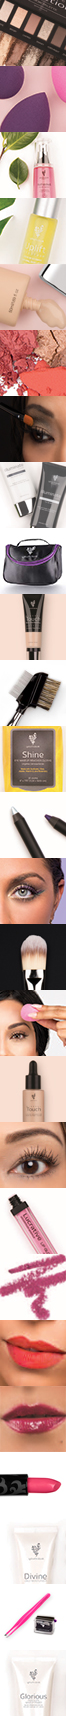 LASH ENHANCER & BROW